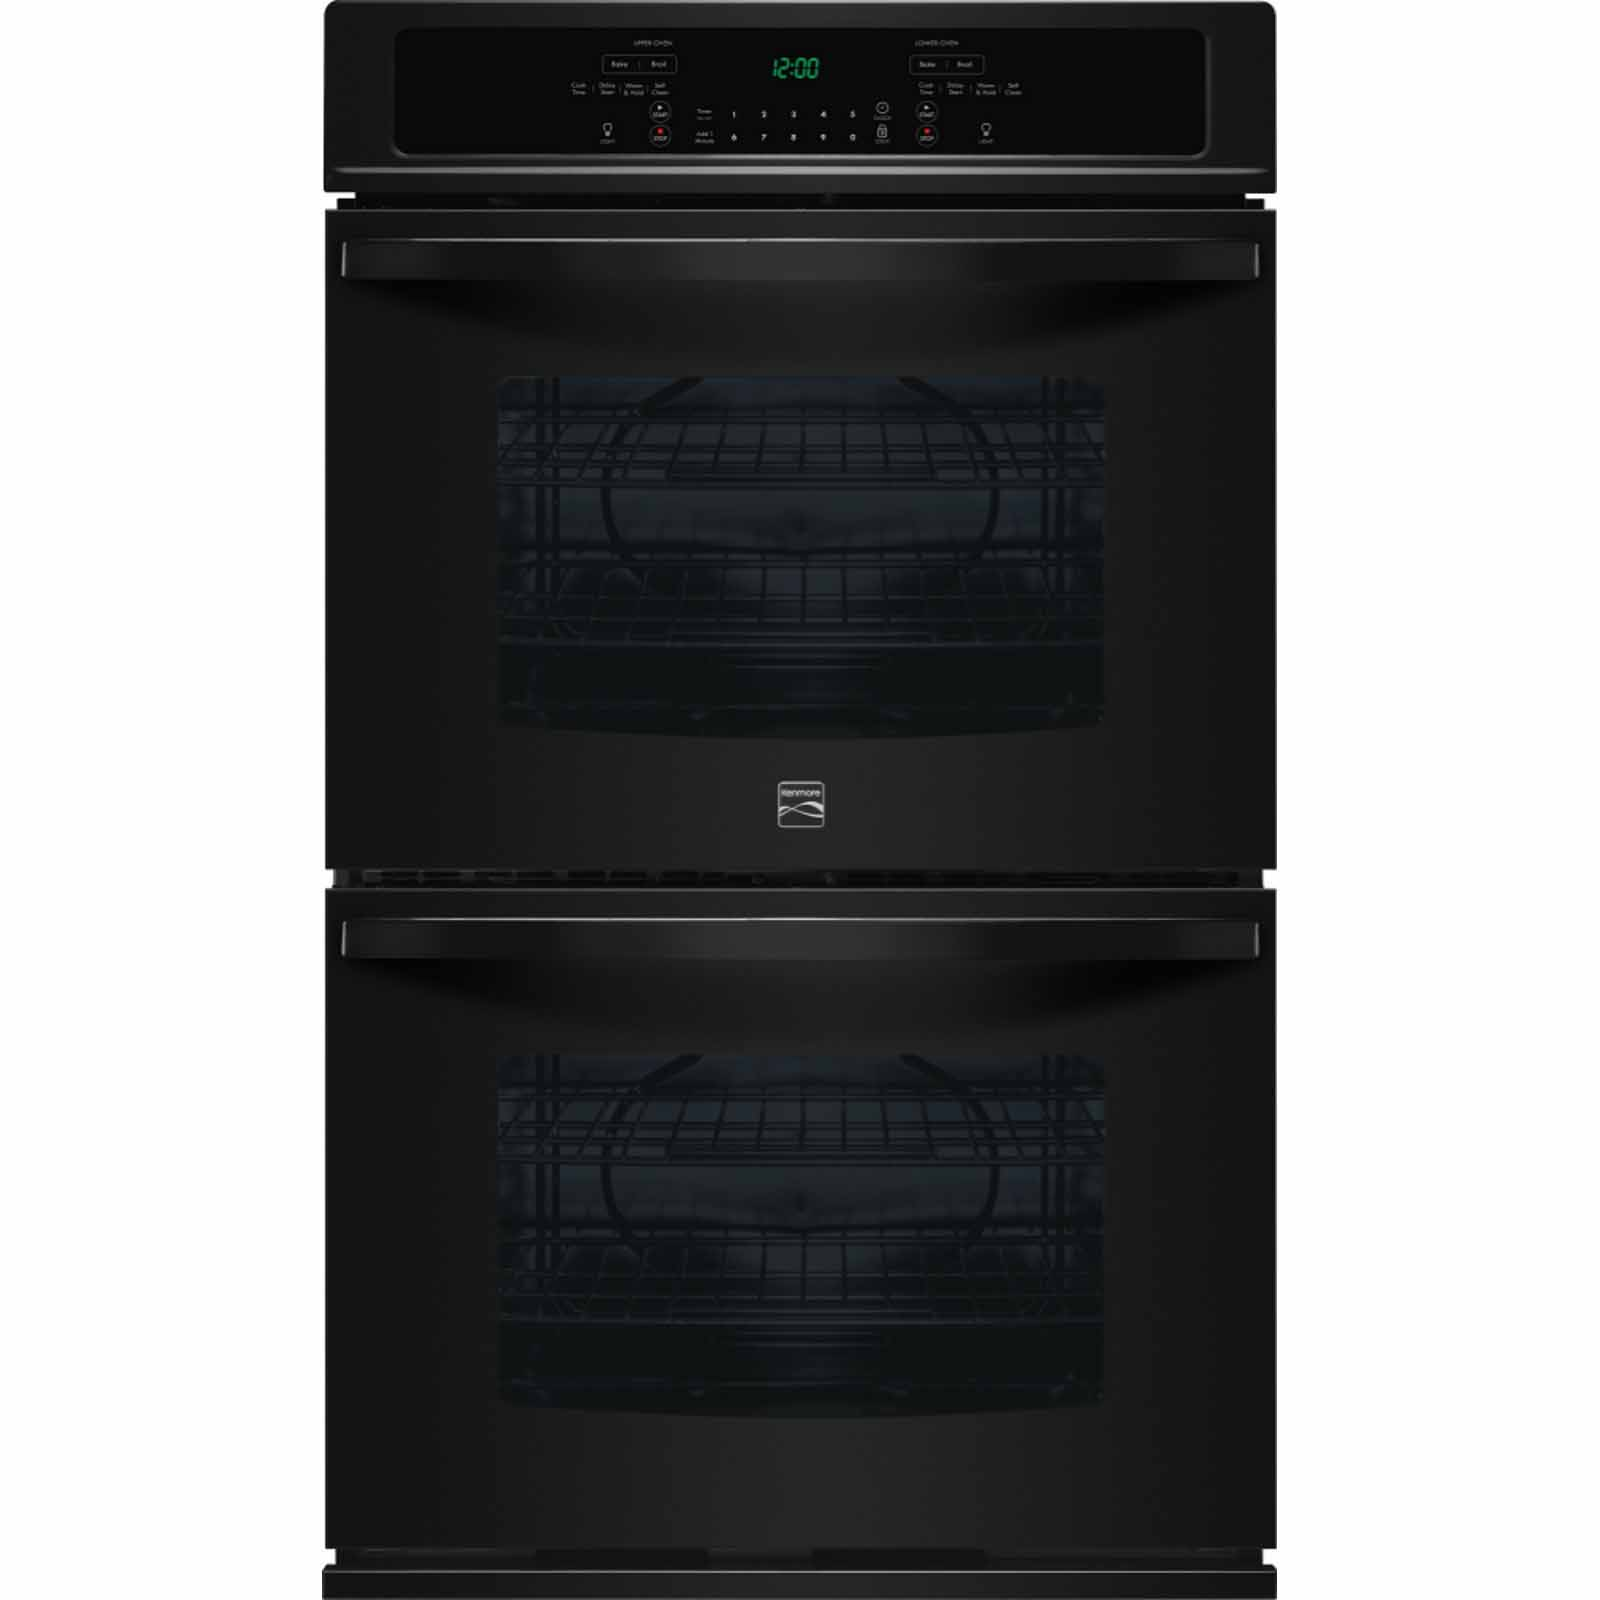 Kenmore 49449 30 Double Electric Wall Oven w/Select Clean® - Black